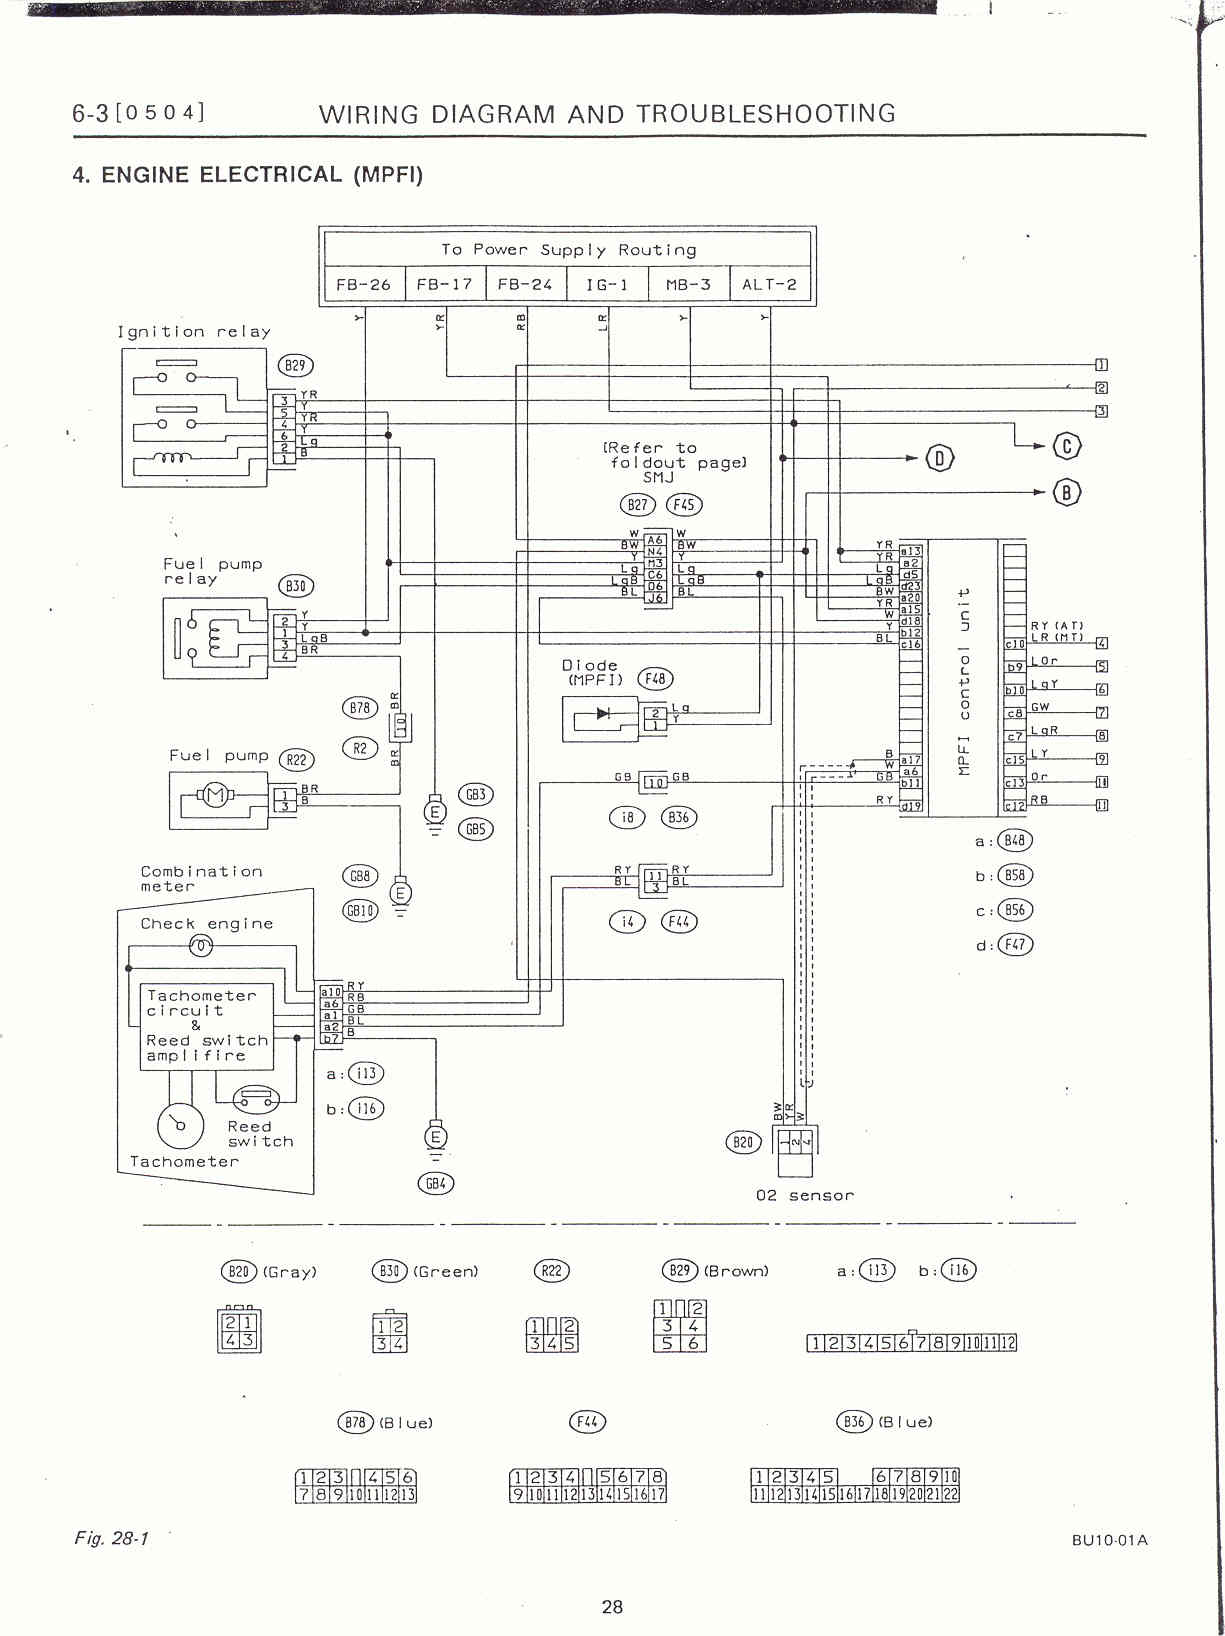 2013 Wrx Wiring Diagram Home Link